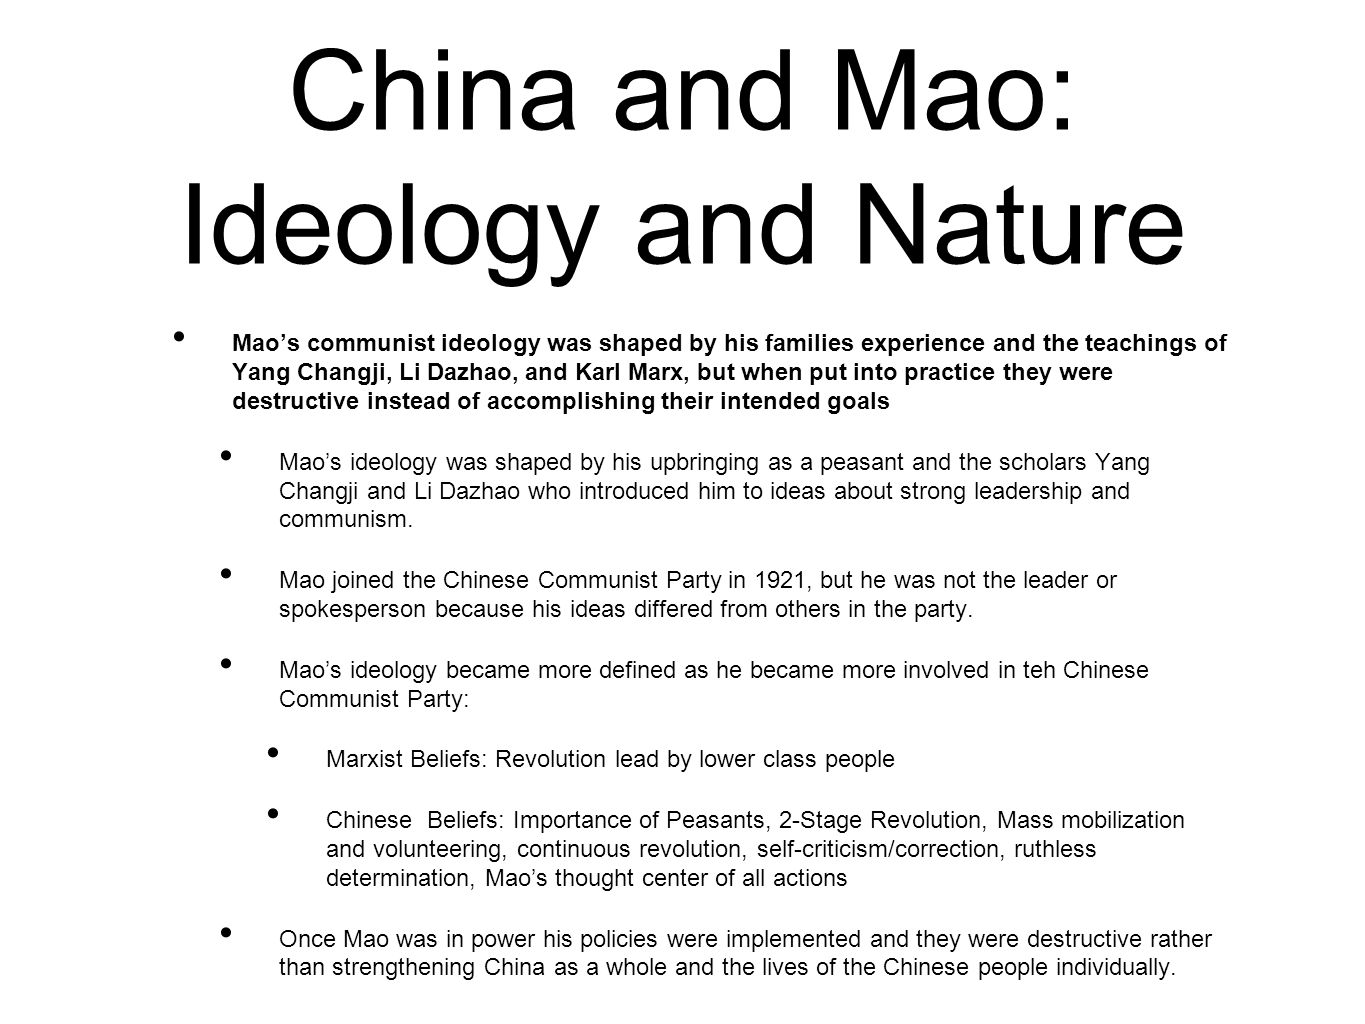 China and Mao: Ideology and Nature